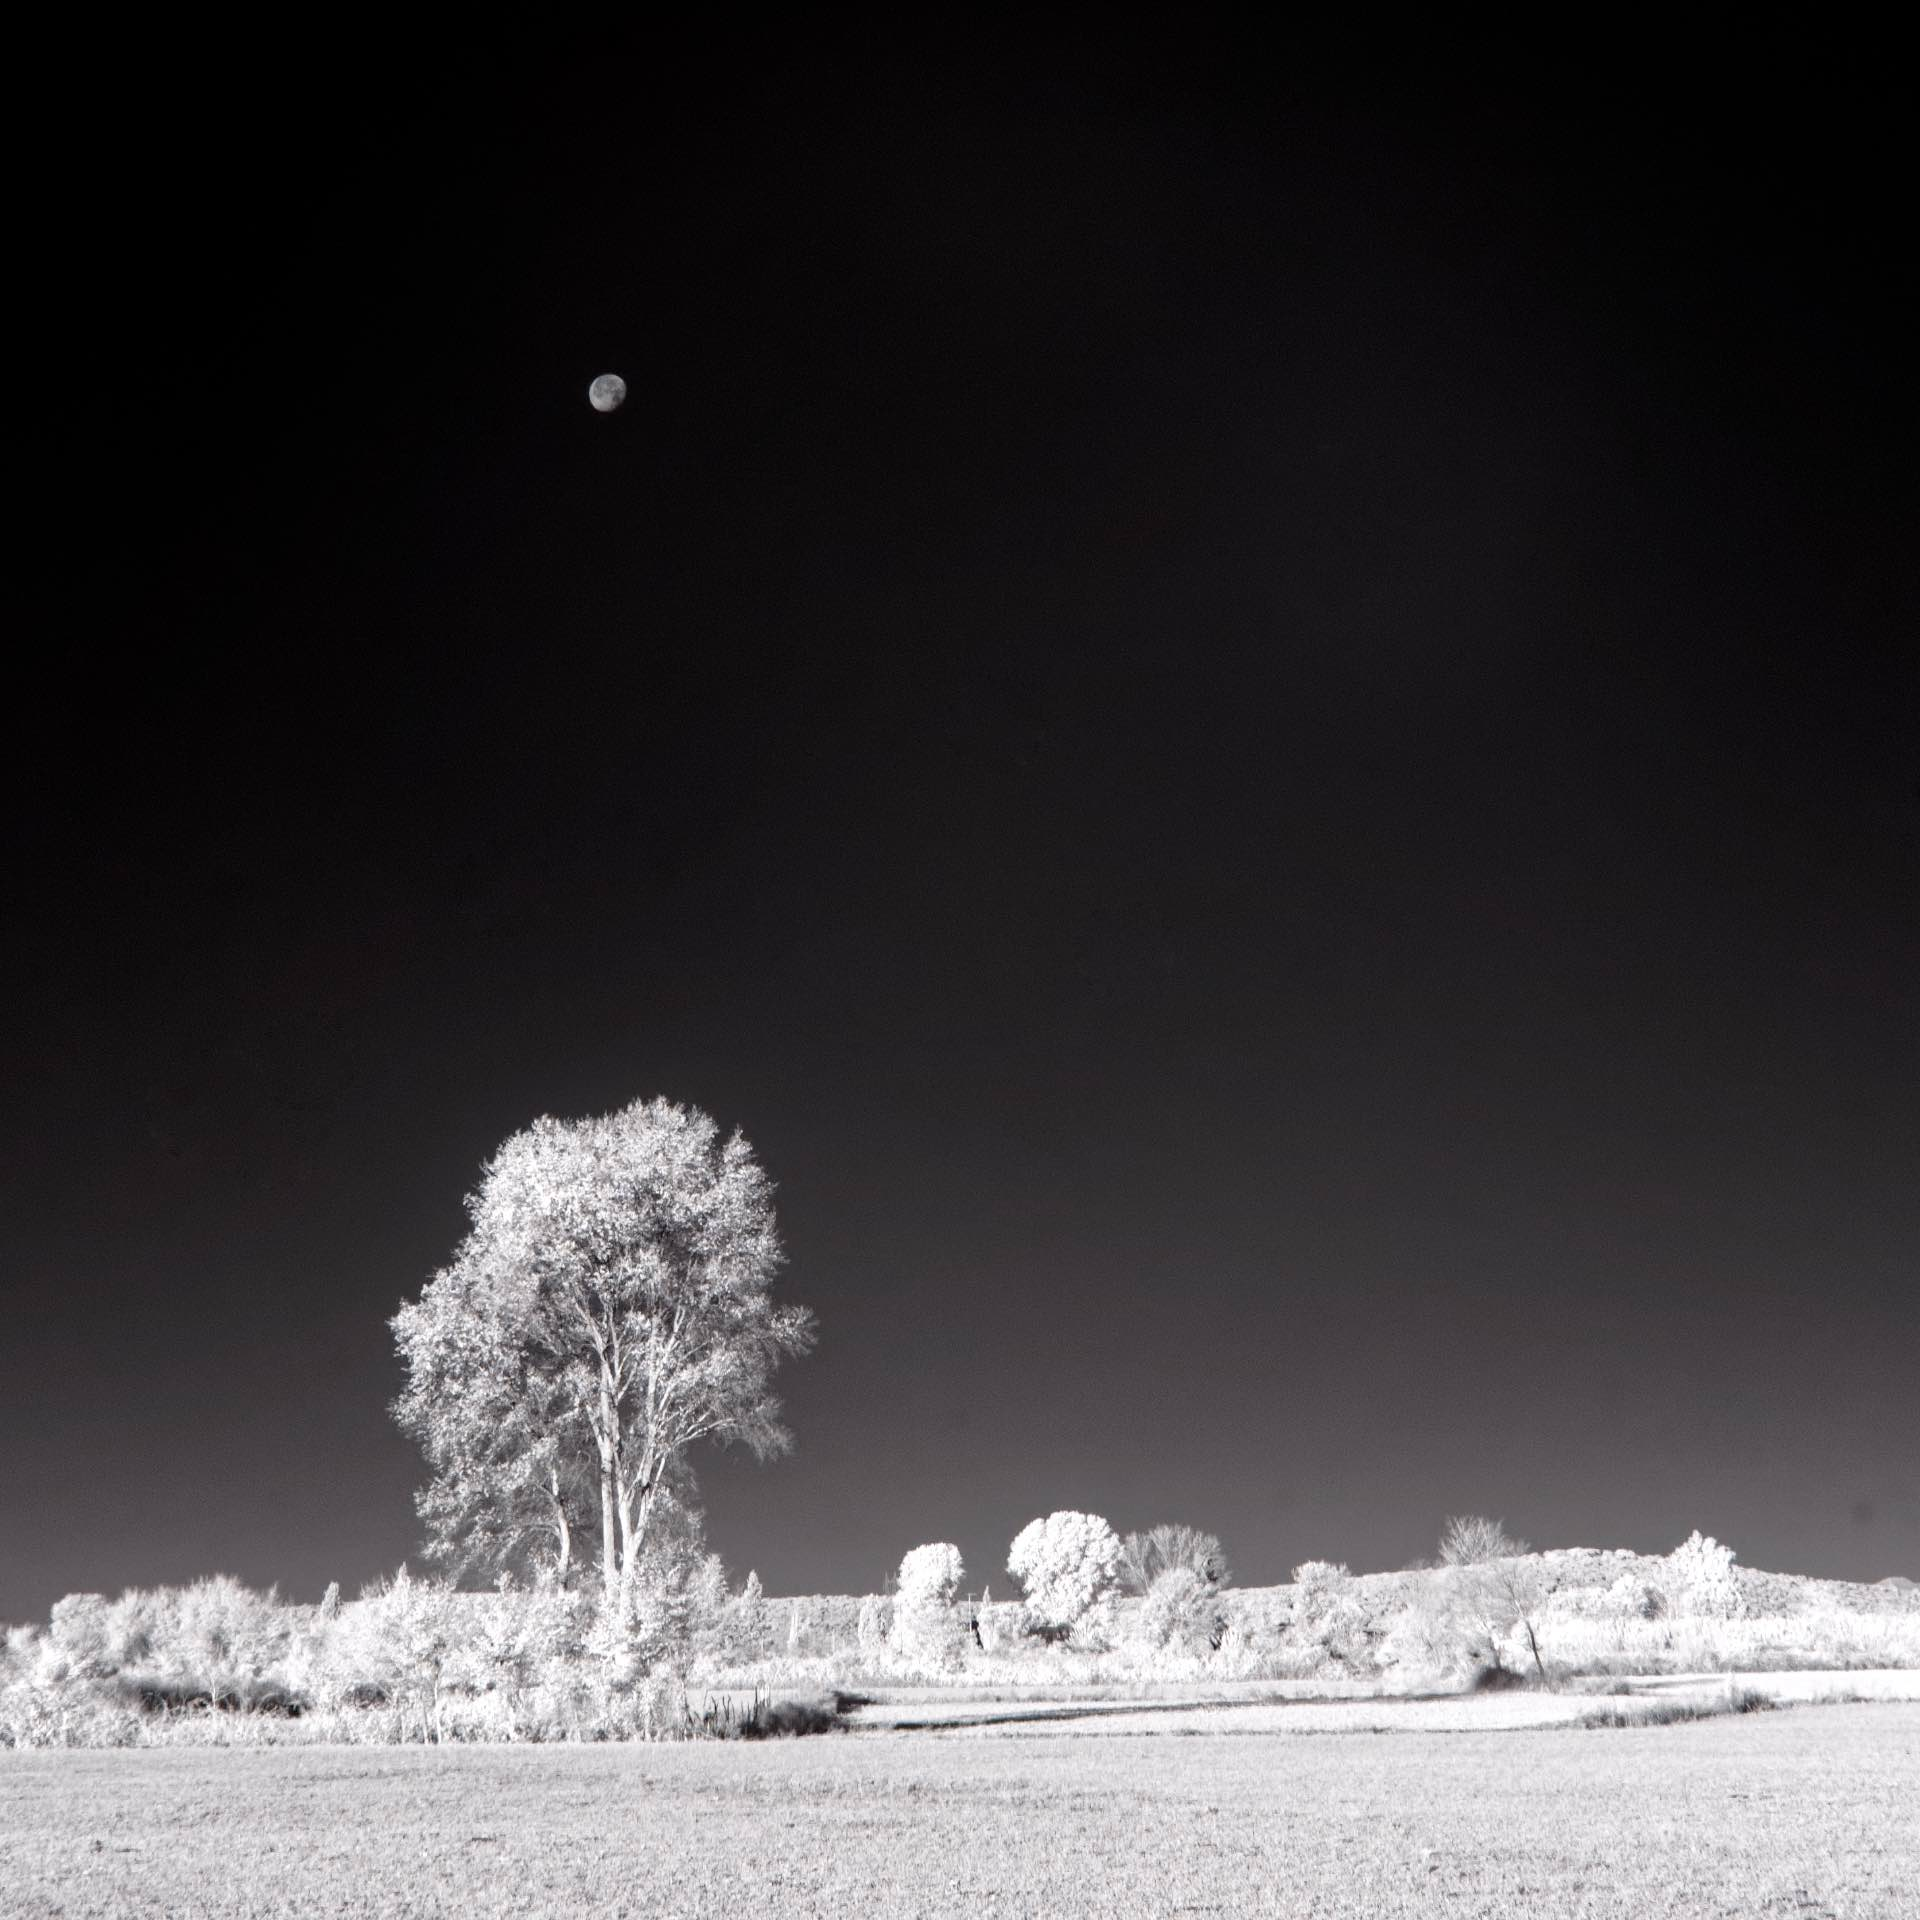 Infrared Landscape with Moon